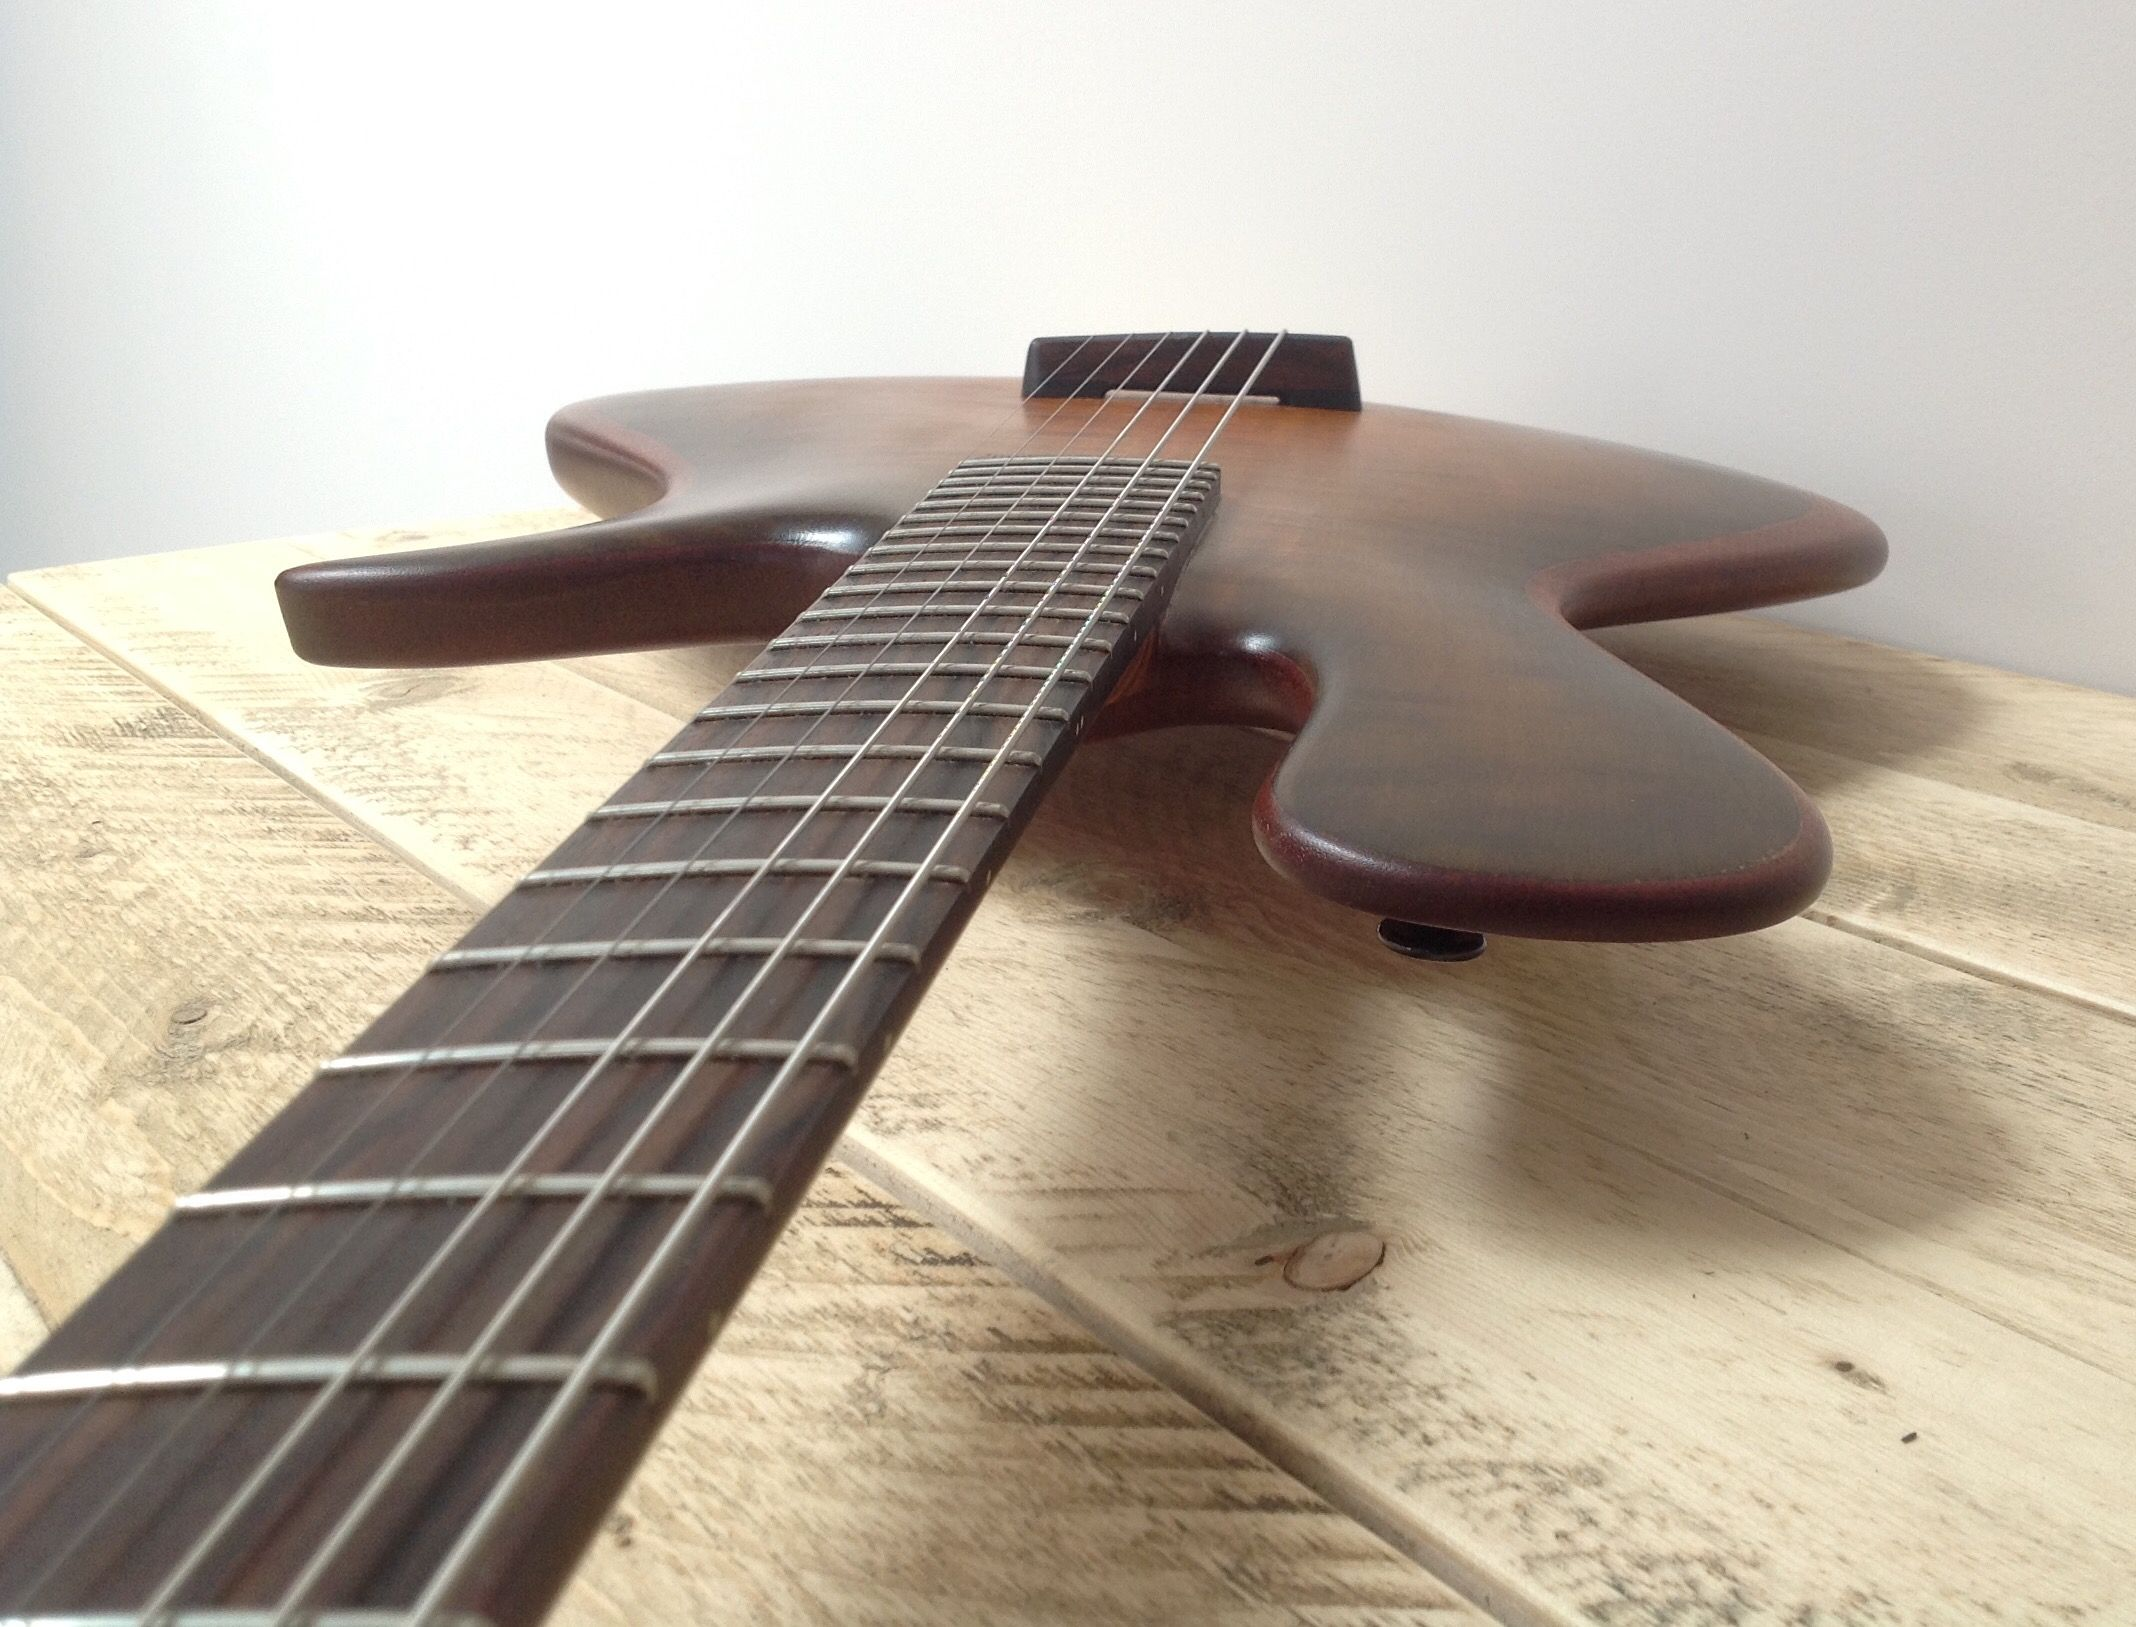 interesting this is a non electric solid body guitar no piezo pickups thin mahogany body